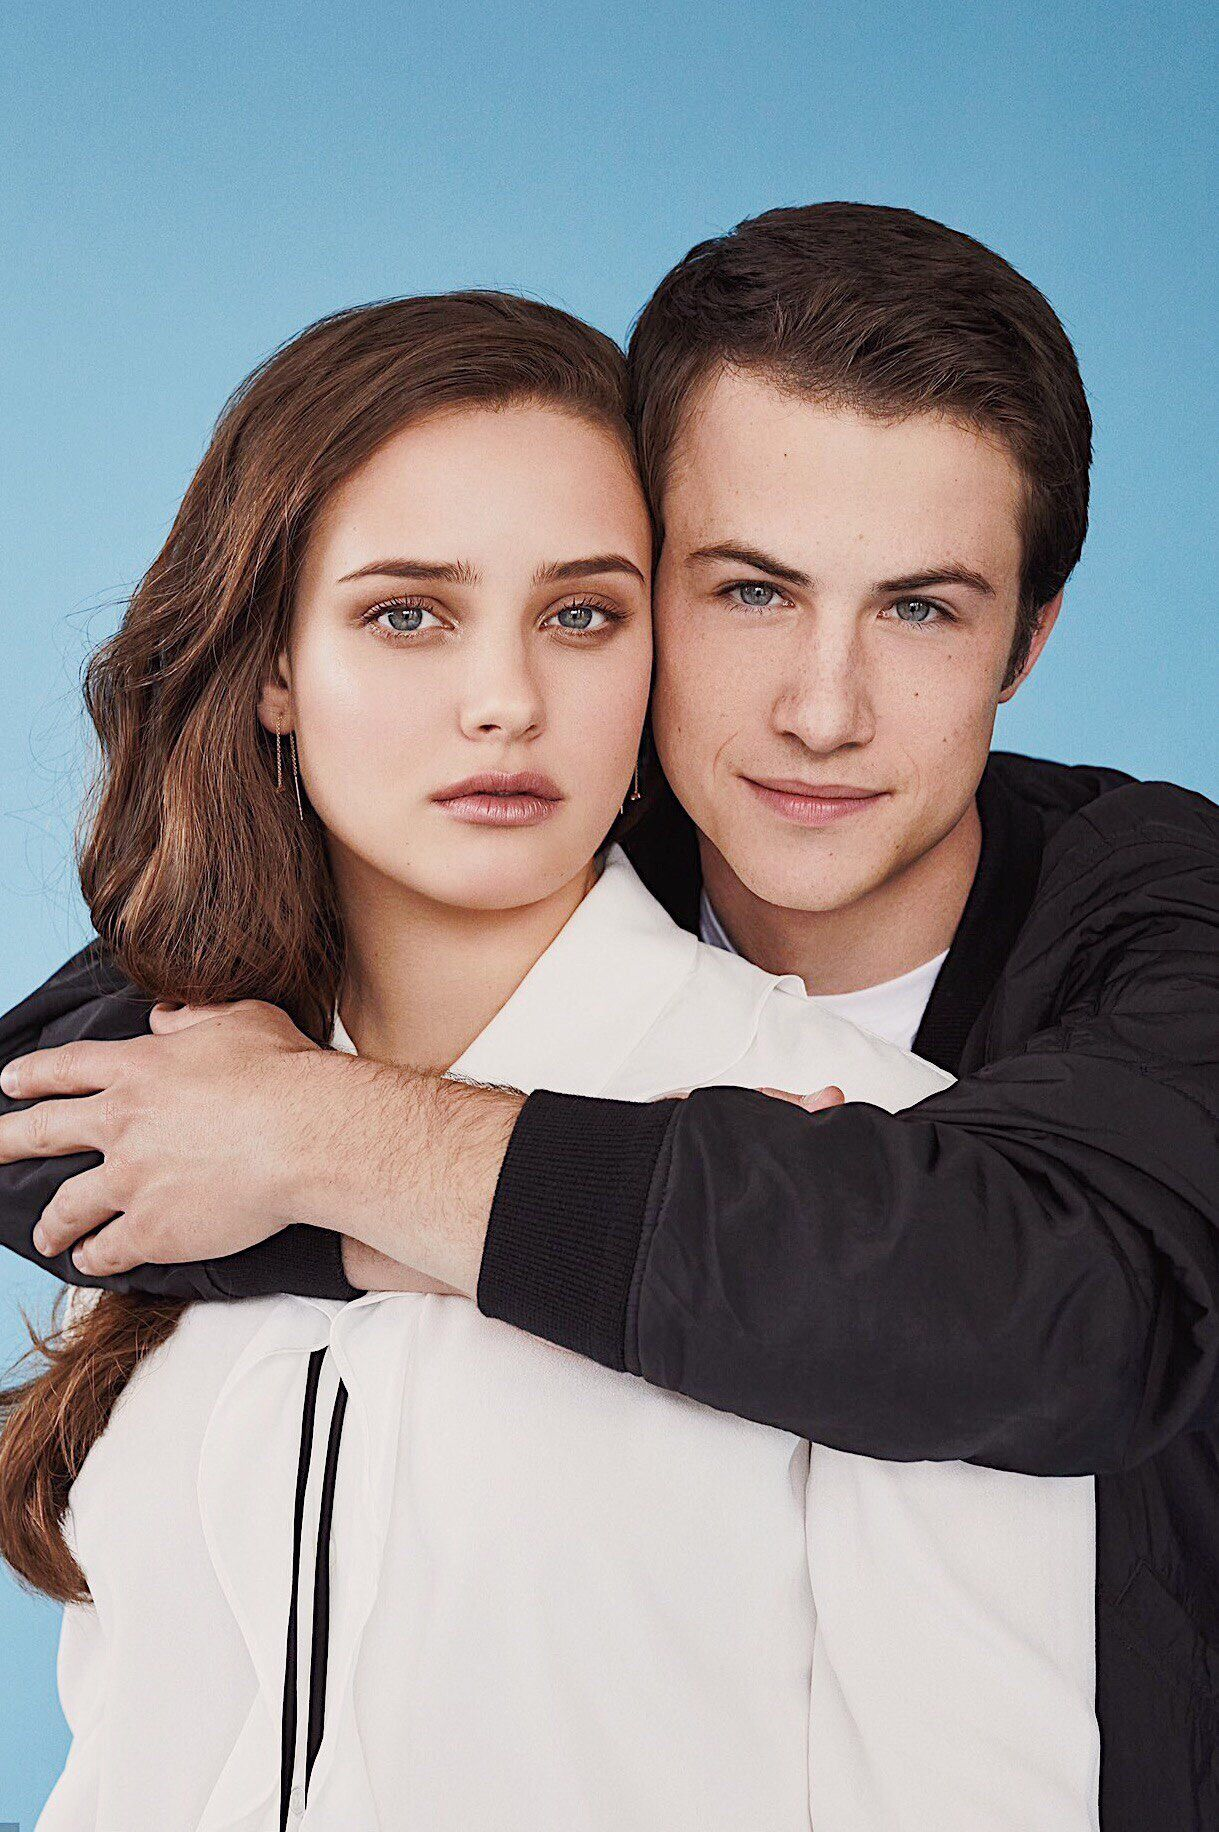 Who is clay dating from 13 reasons why